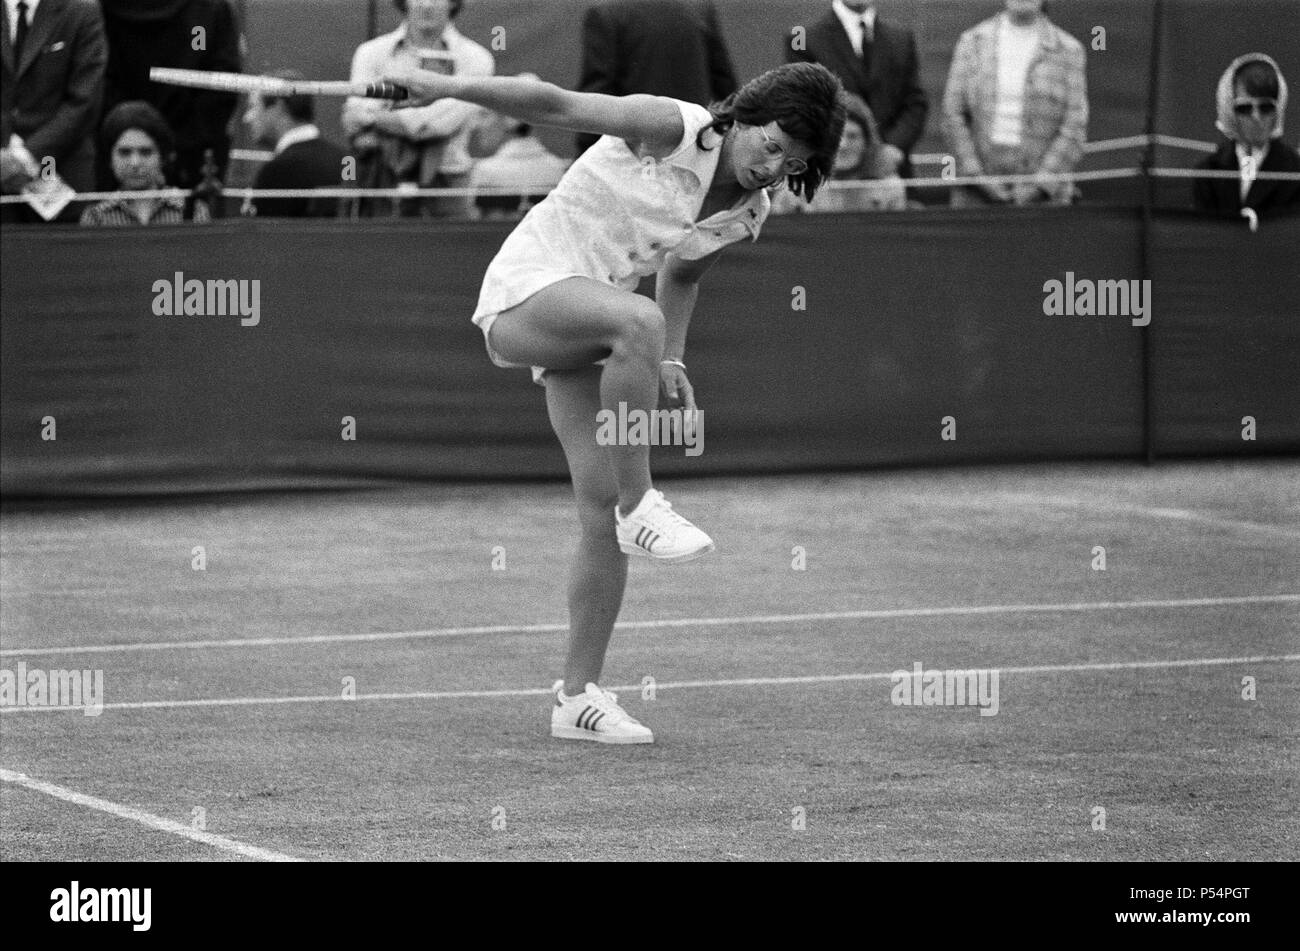 Top players at the Queen's Club Tournament at Queen's Club, Kensington. Billie Jean King, the defending champion plays in a women's doubled with Miss Casals against Miss Stap and Miss Kroshina.  21st June 1973. - Stock Image